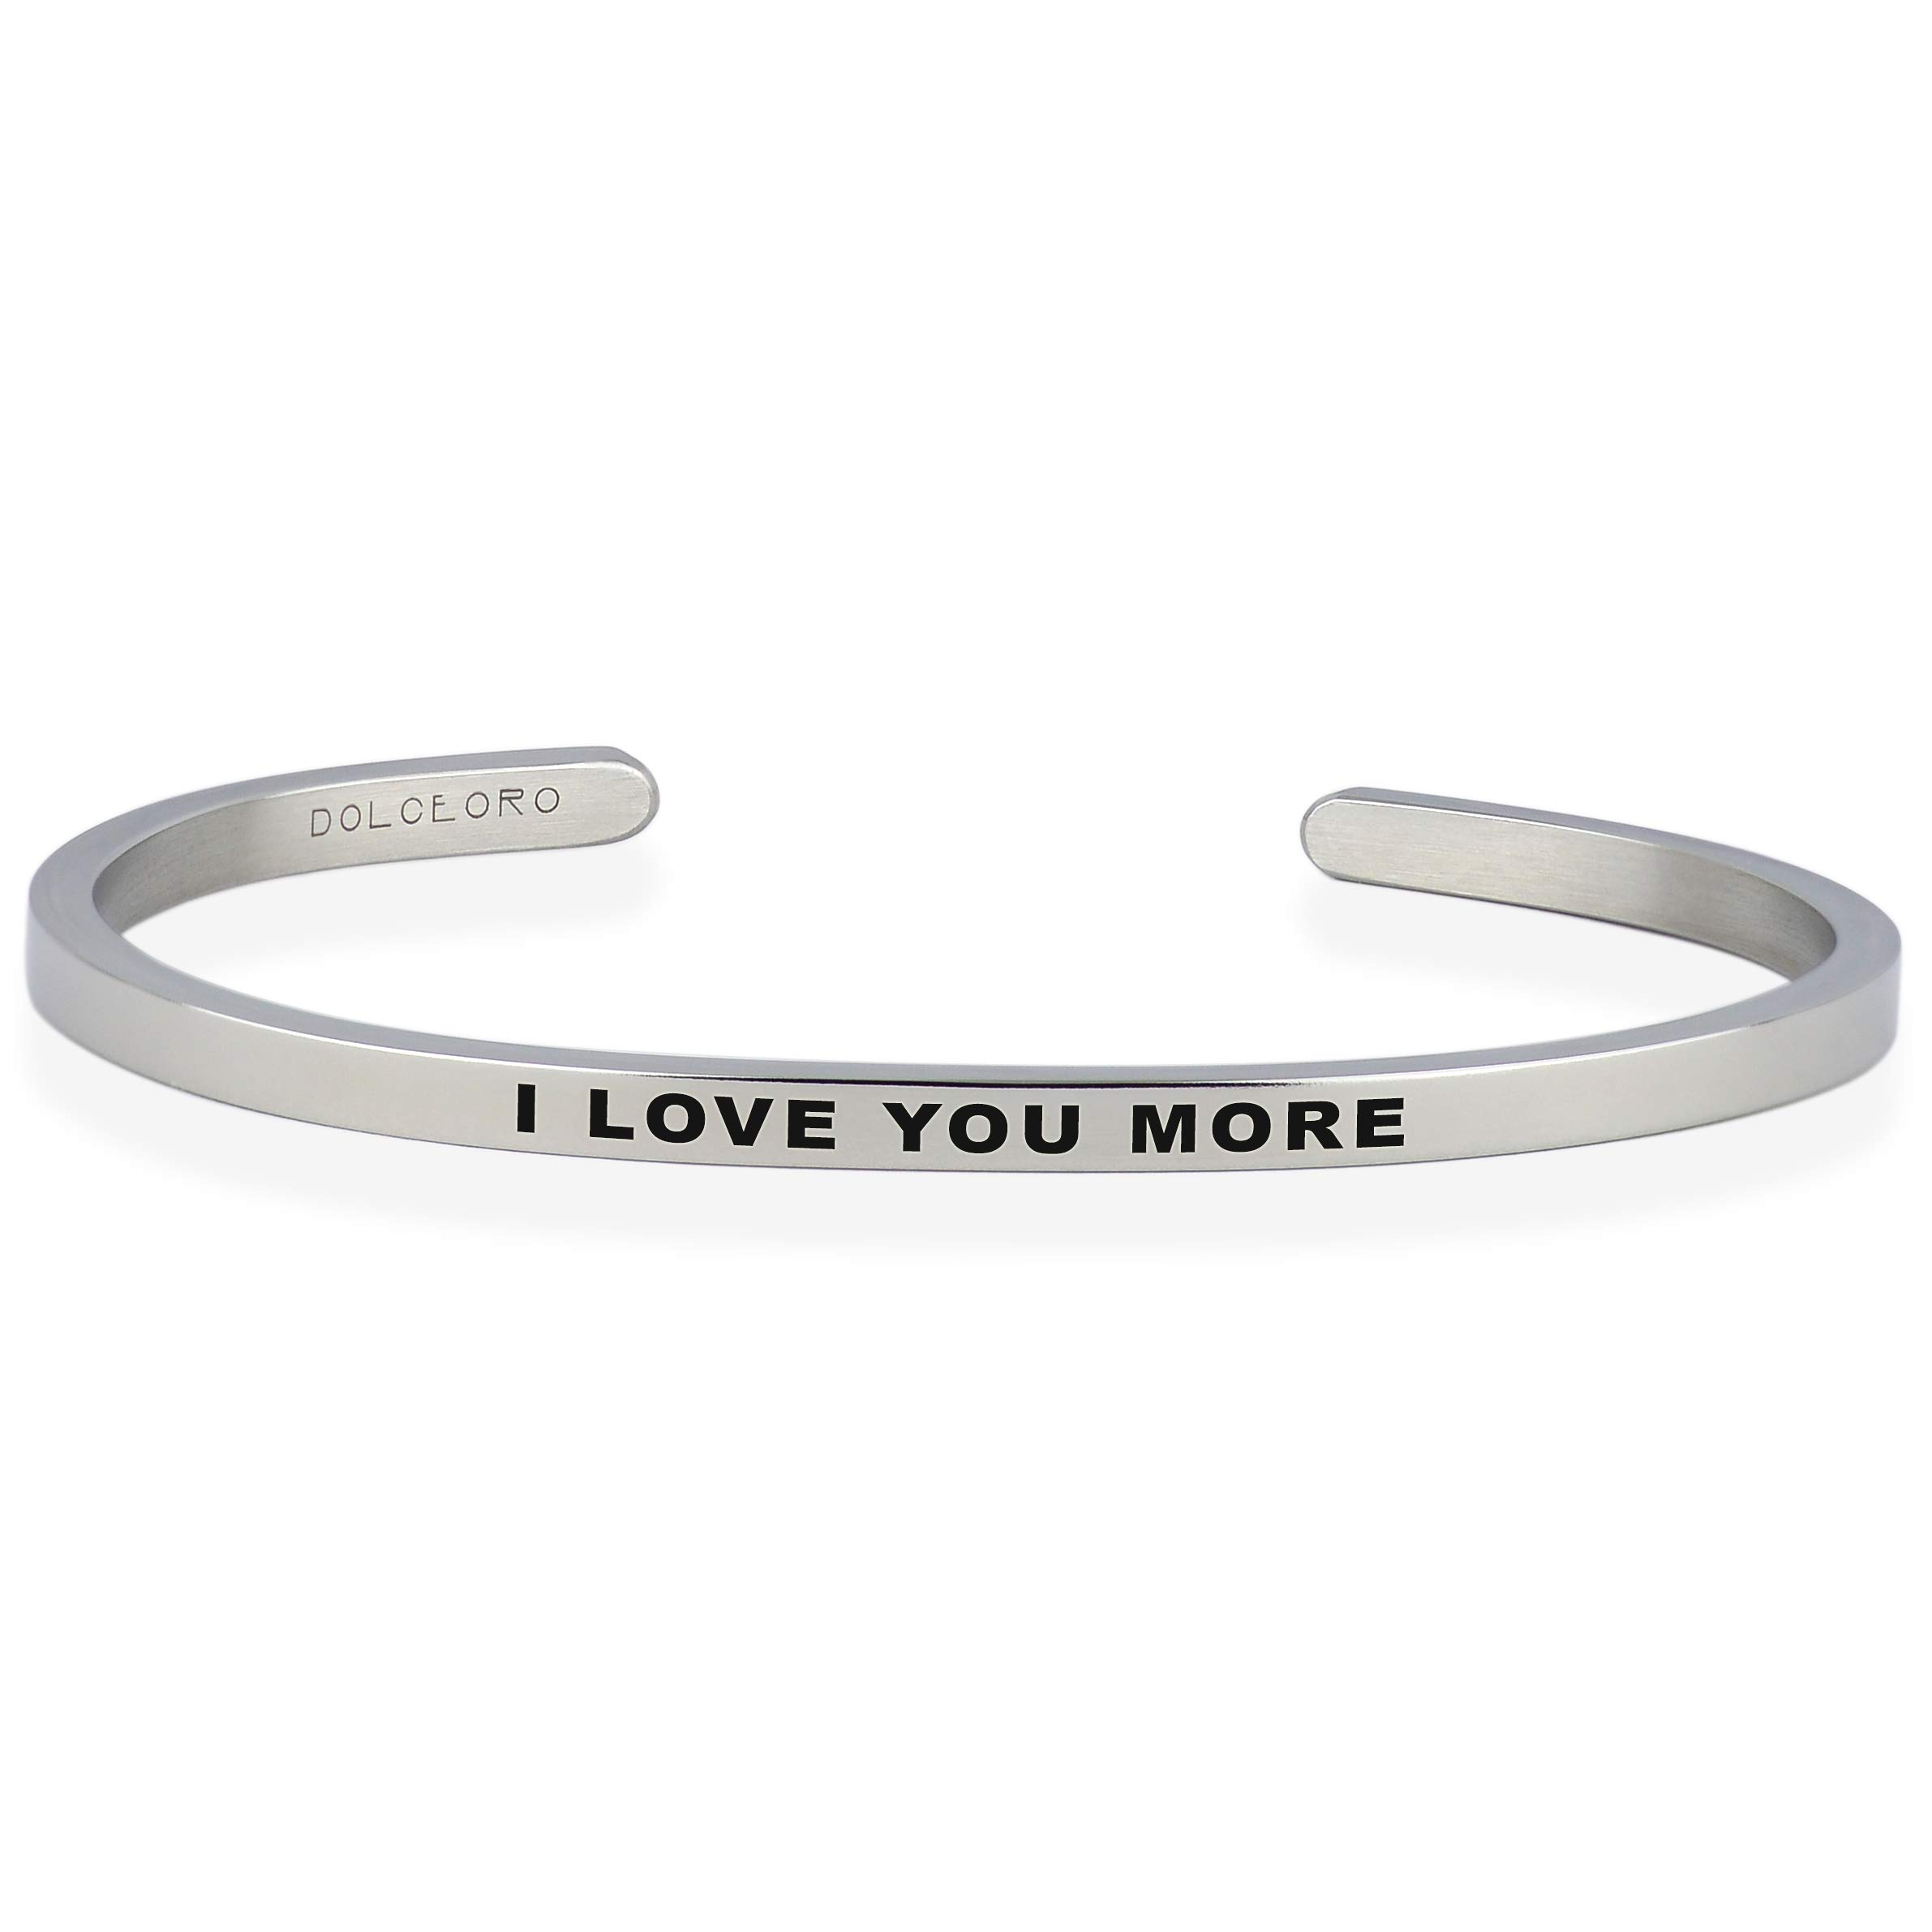 Dolceoro I Love You More - Inspirational Mantra Bracelet Jewelry 316L Surgical Stainless Steel